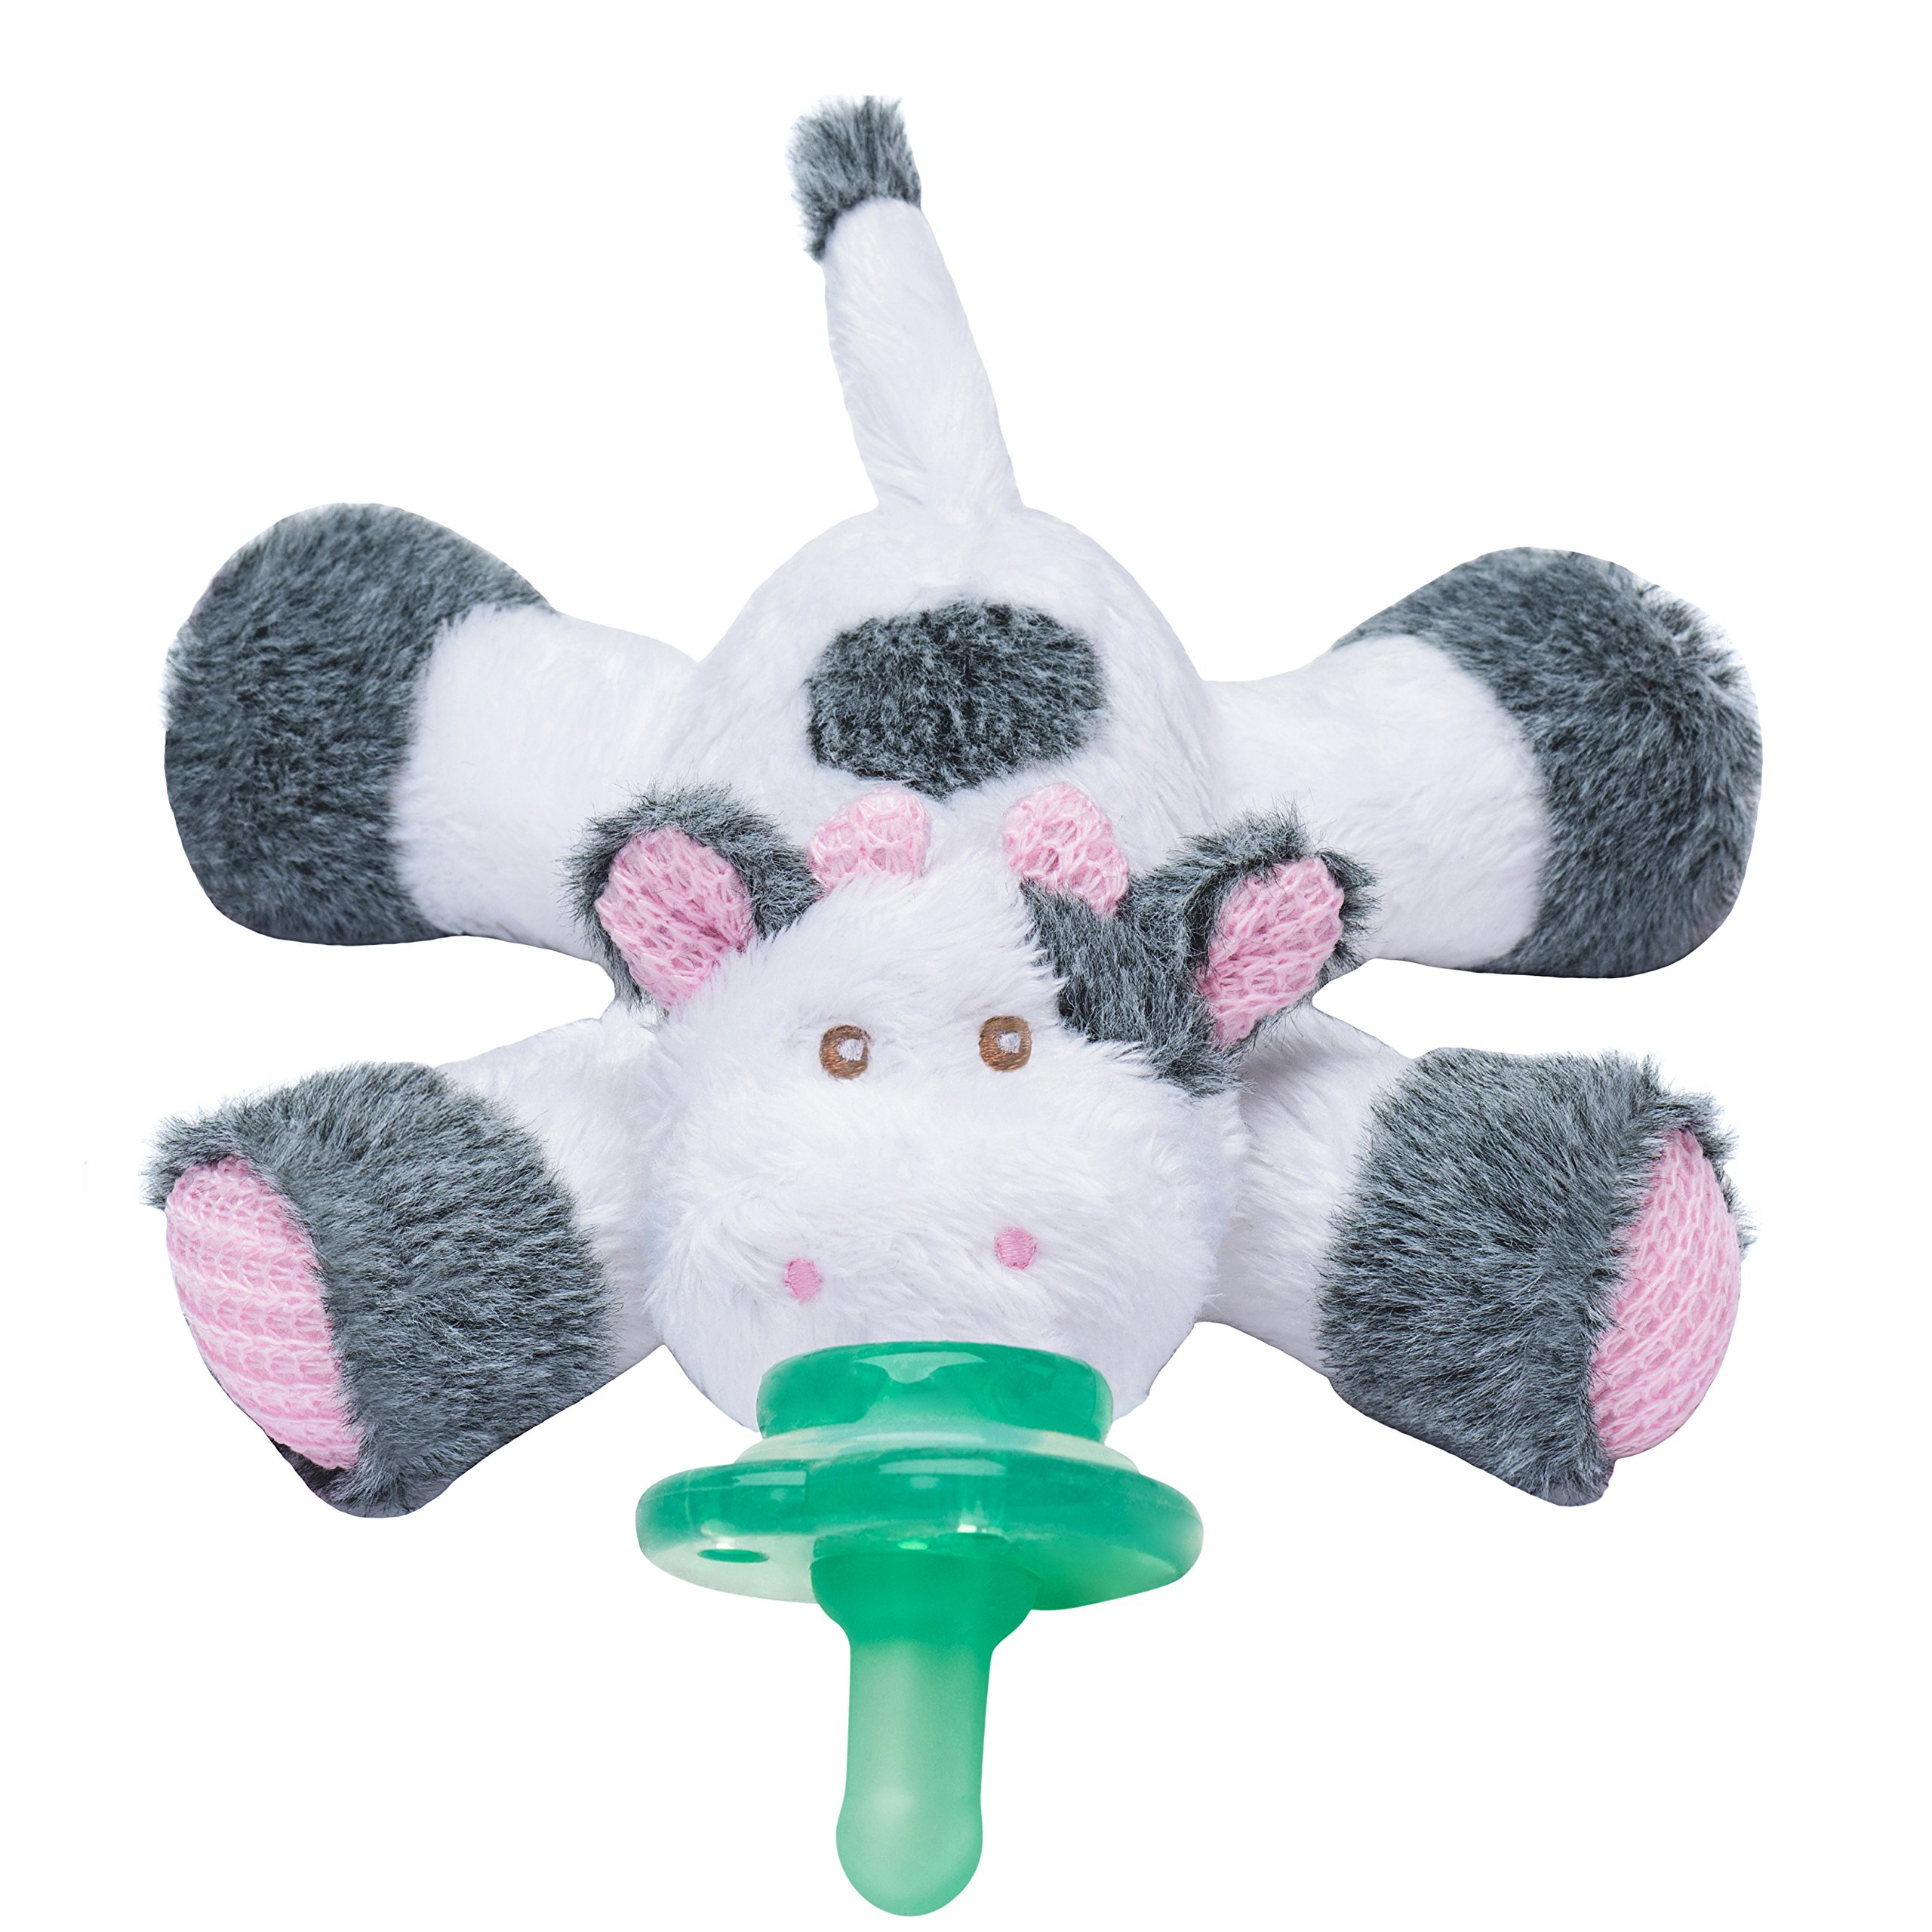 Nookums Paci-Plushies Cow Buddies- Pacifier Holder (Plush Toy Includes Detachable Pacifier, Use with Multiple Brand Name Pacifiers)